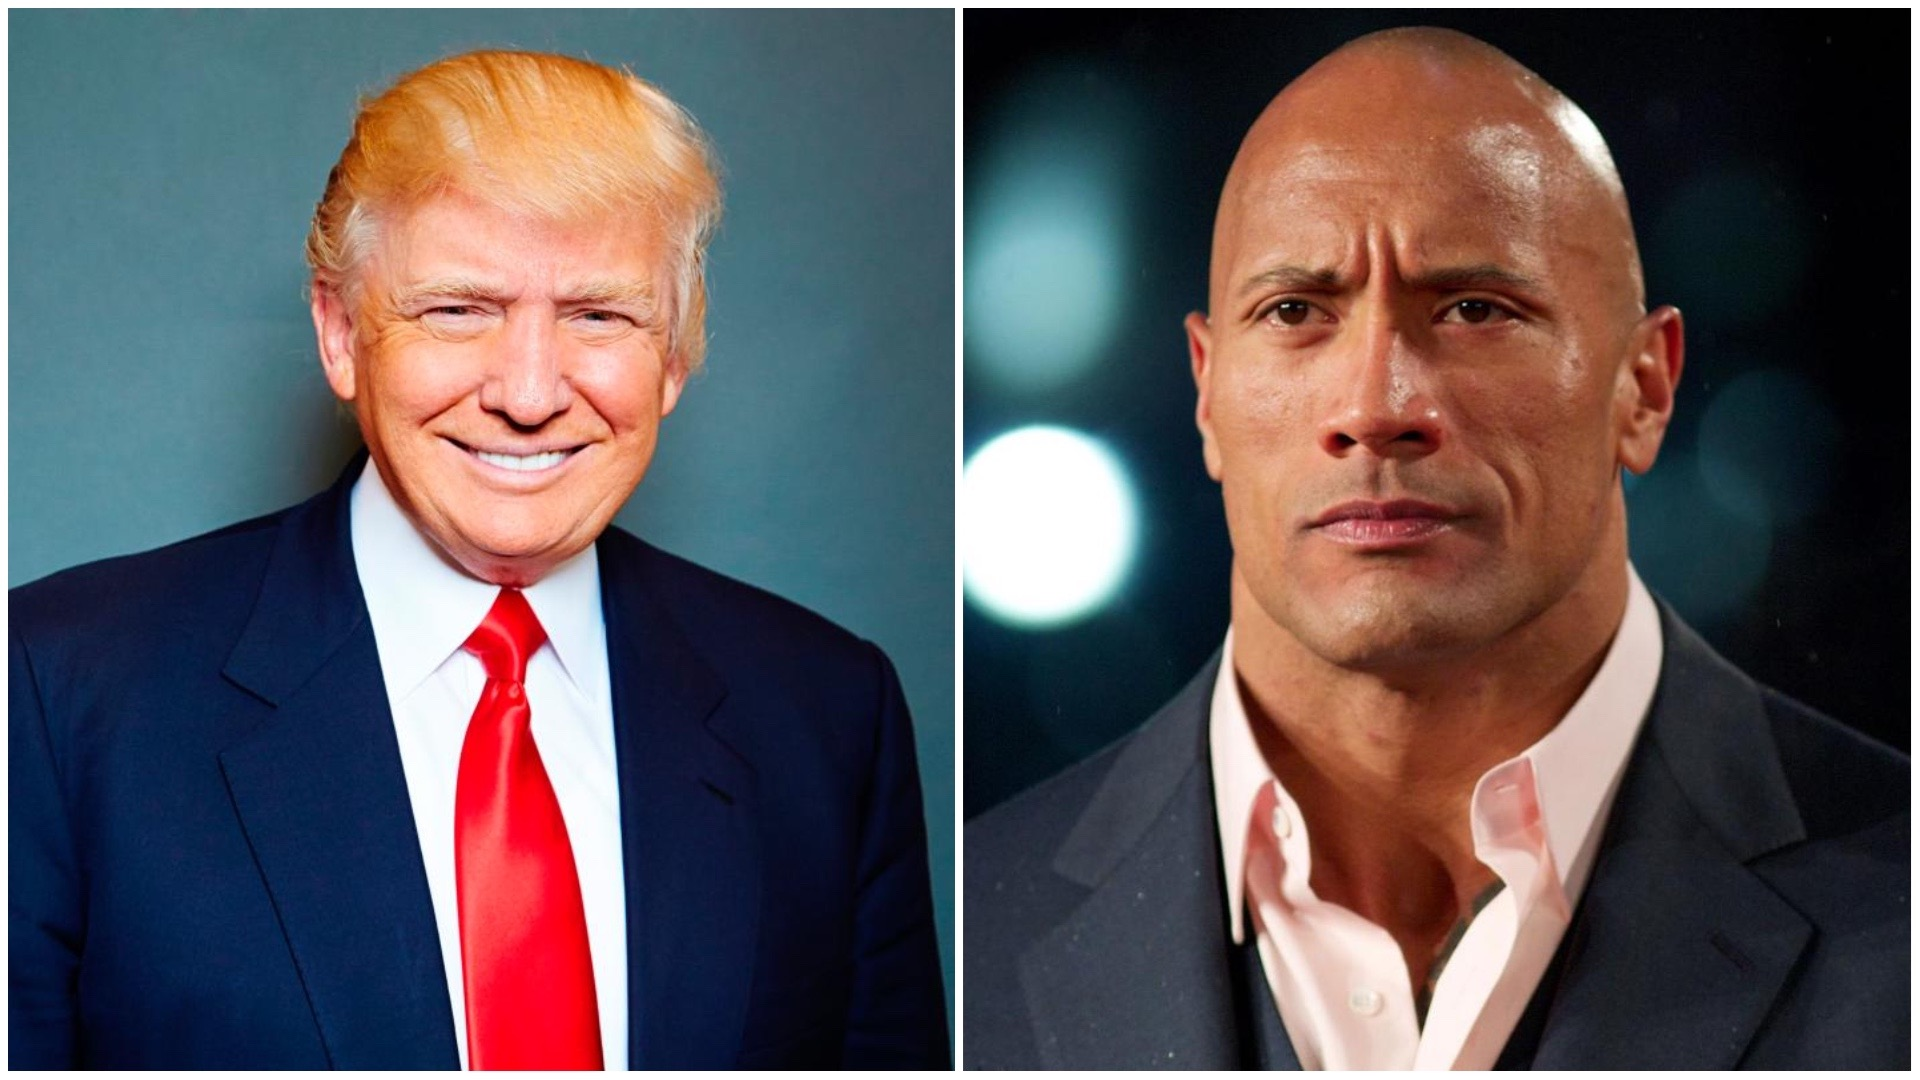 Donald Trump and Dwayne Johnson.